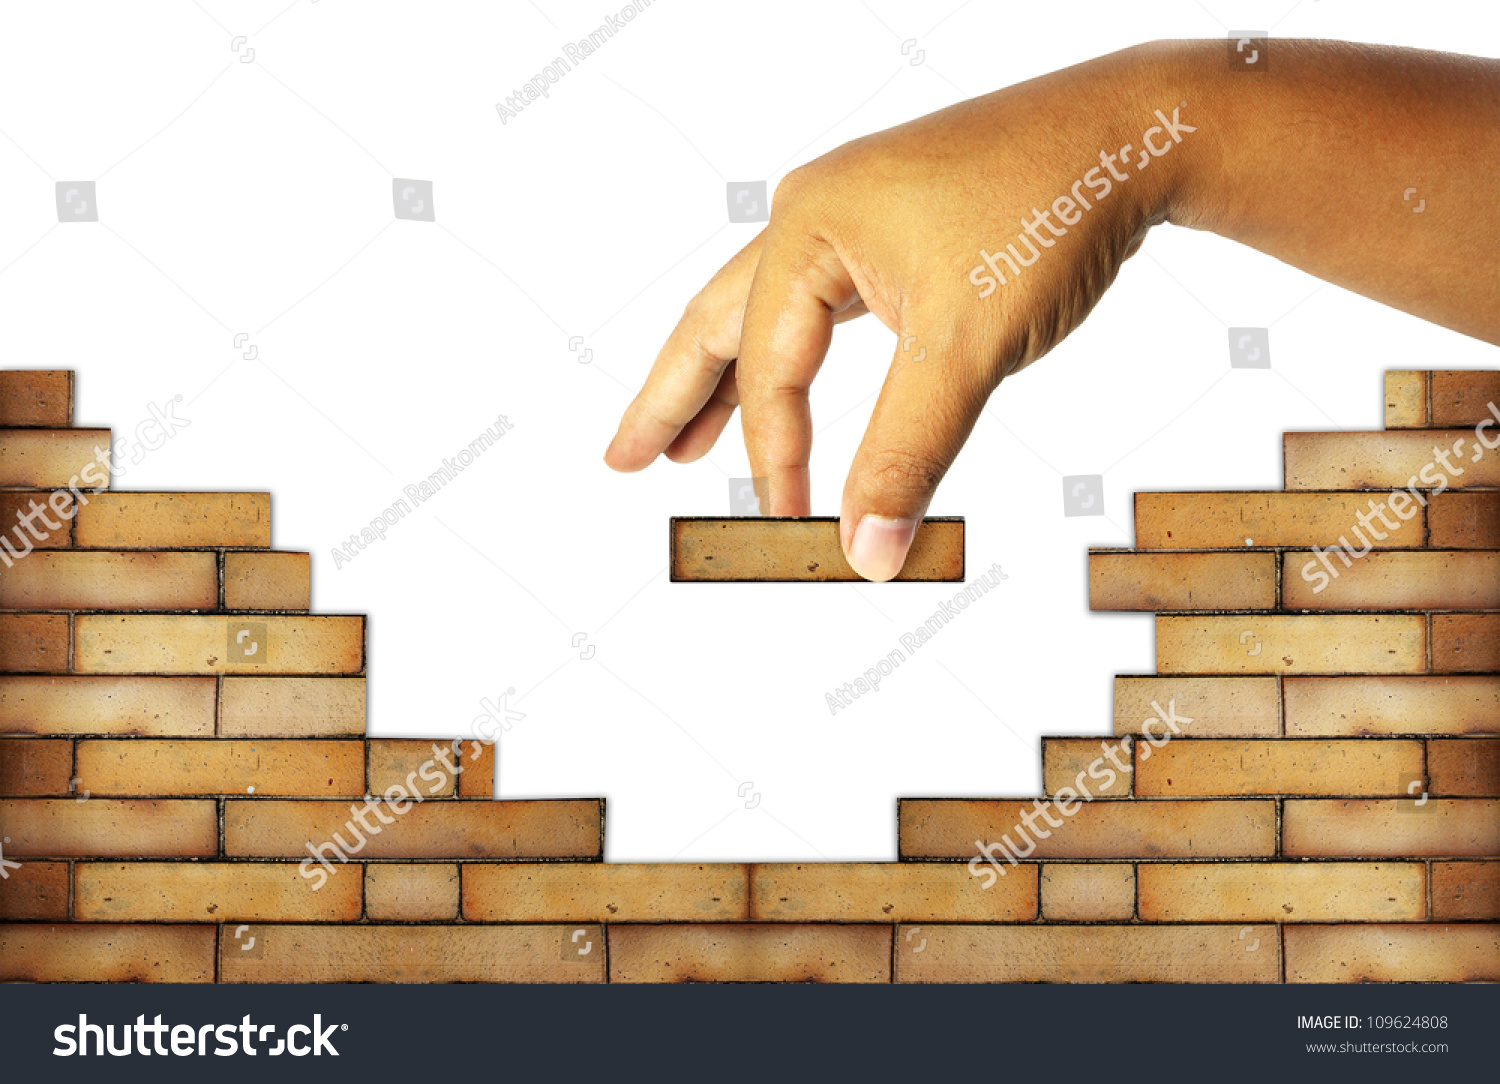 Hand Building Brick Wall Build House Stock Illustration